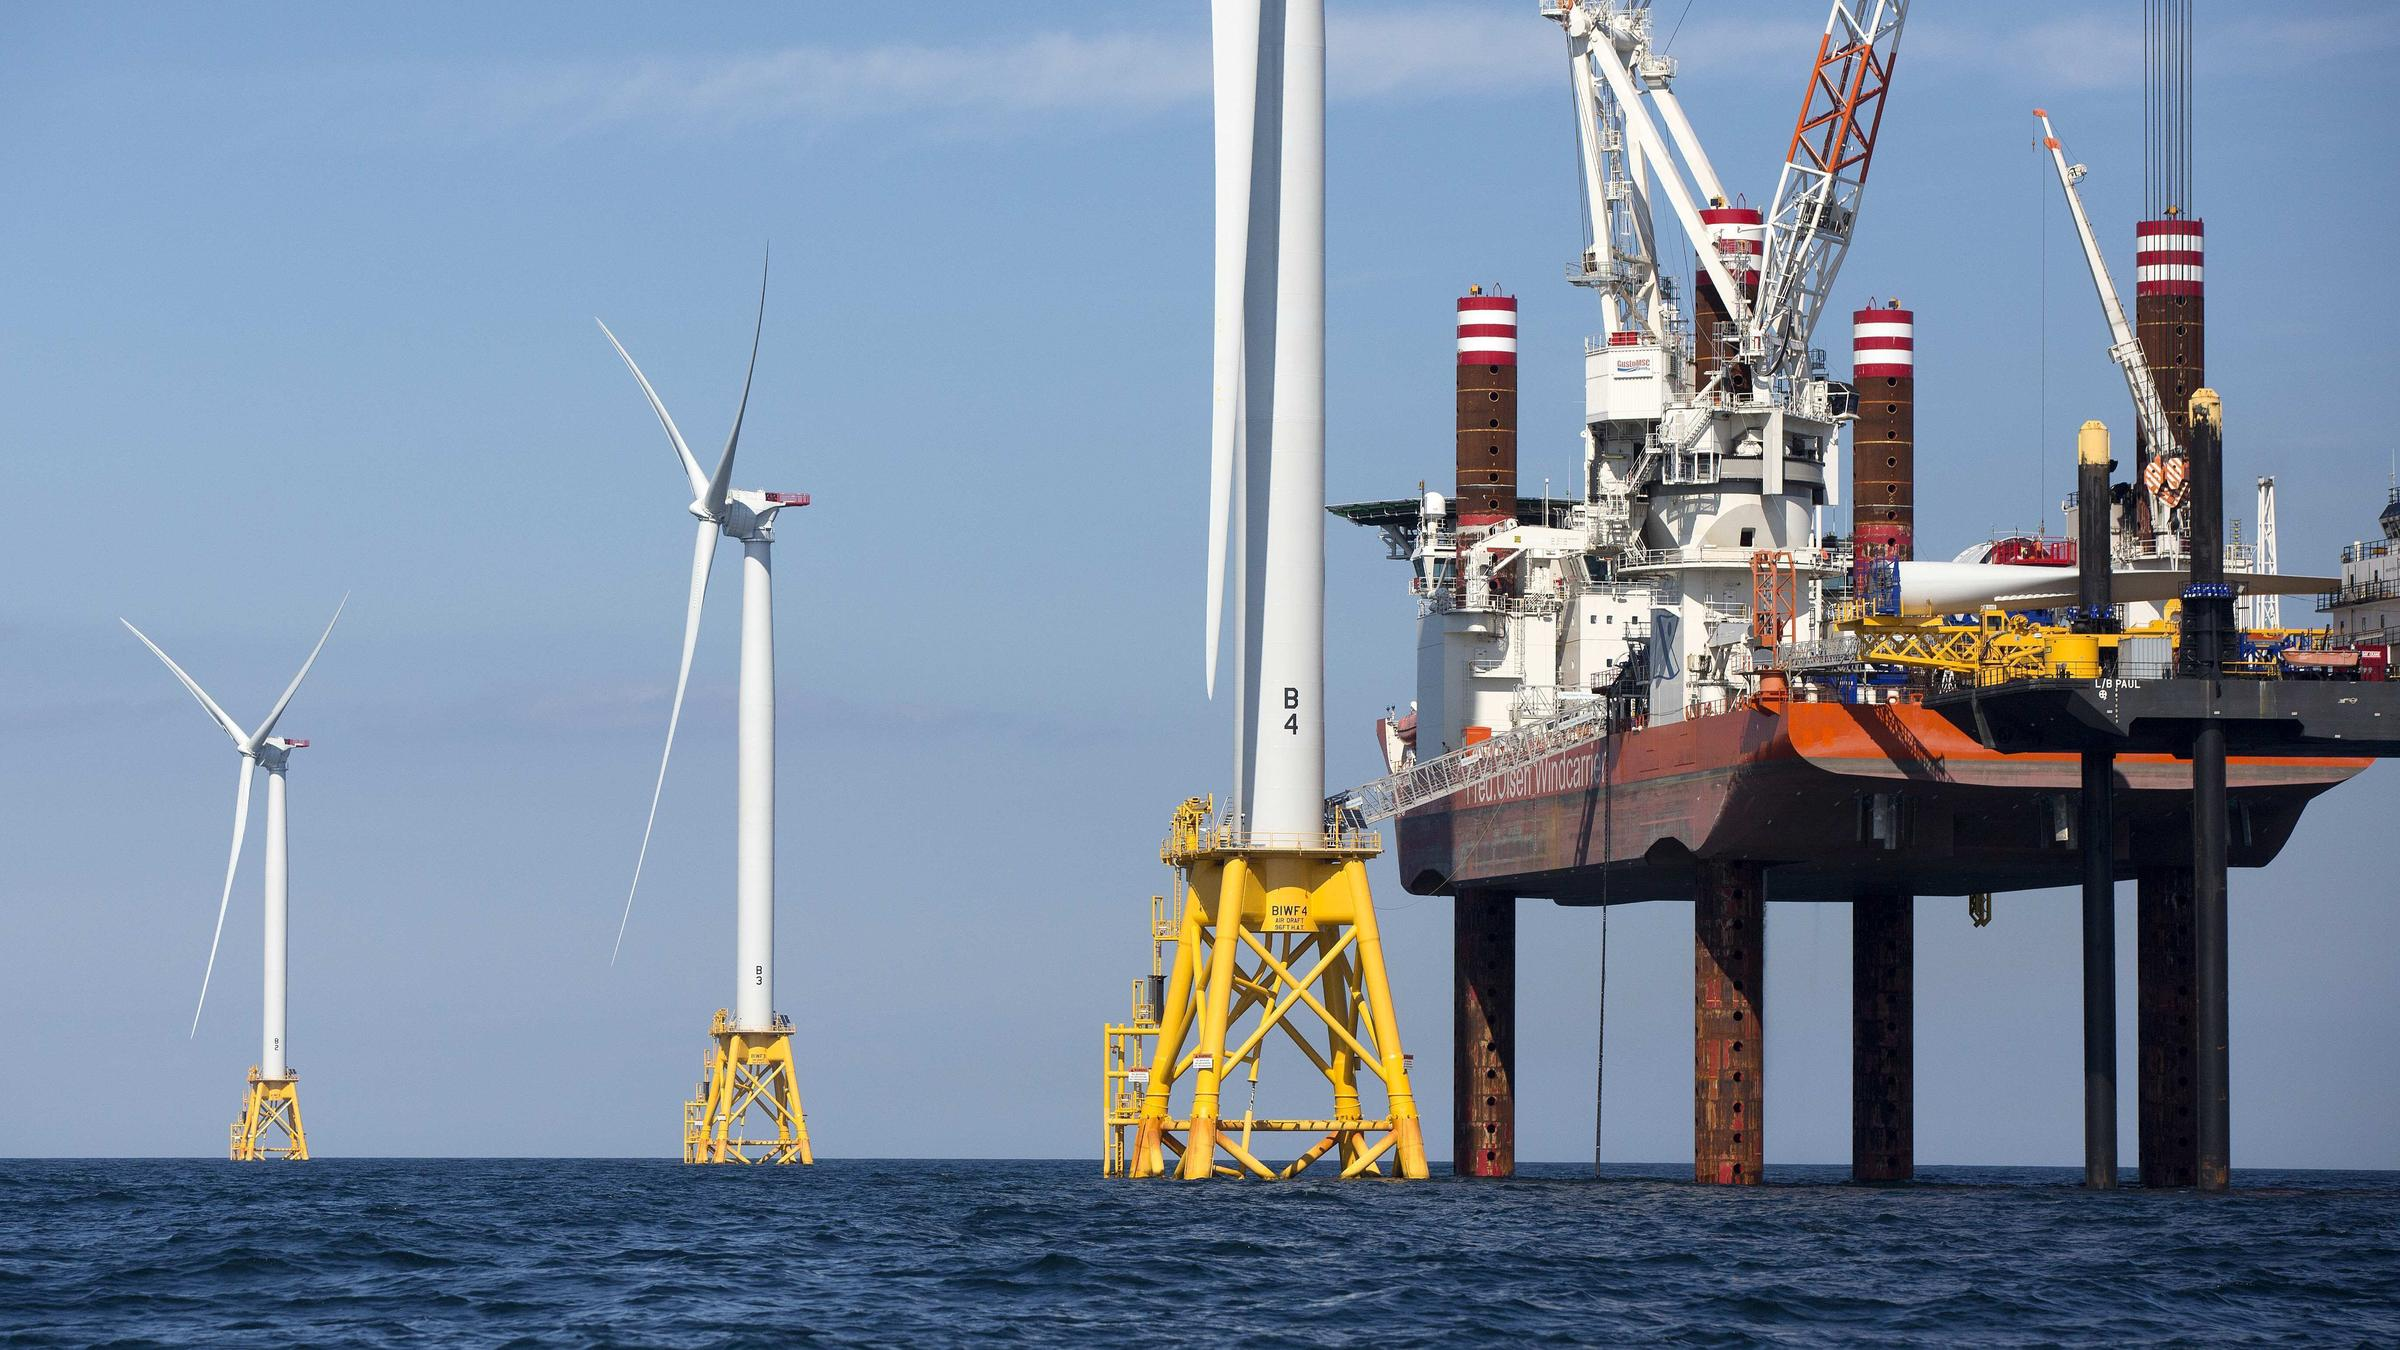 When Will New Hampshire Take Up Offshore Wind Energy Projects